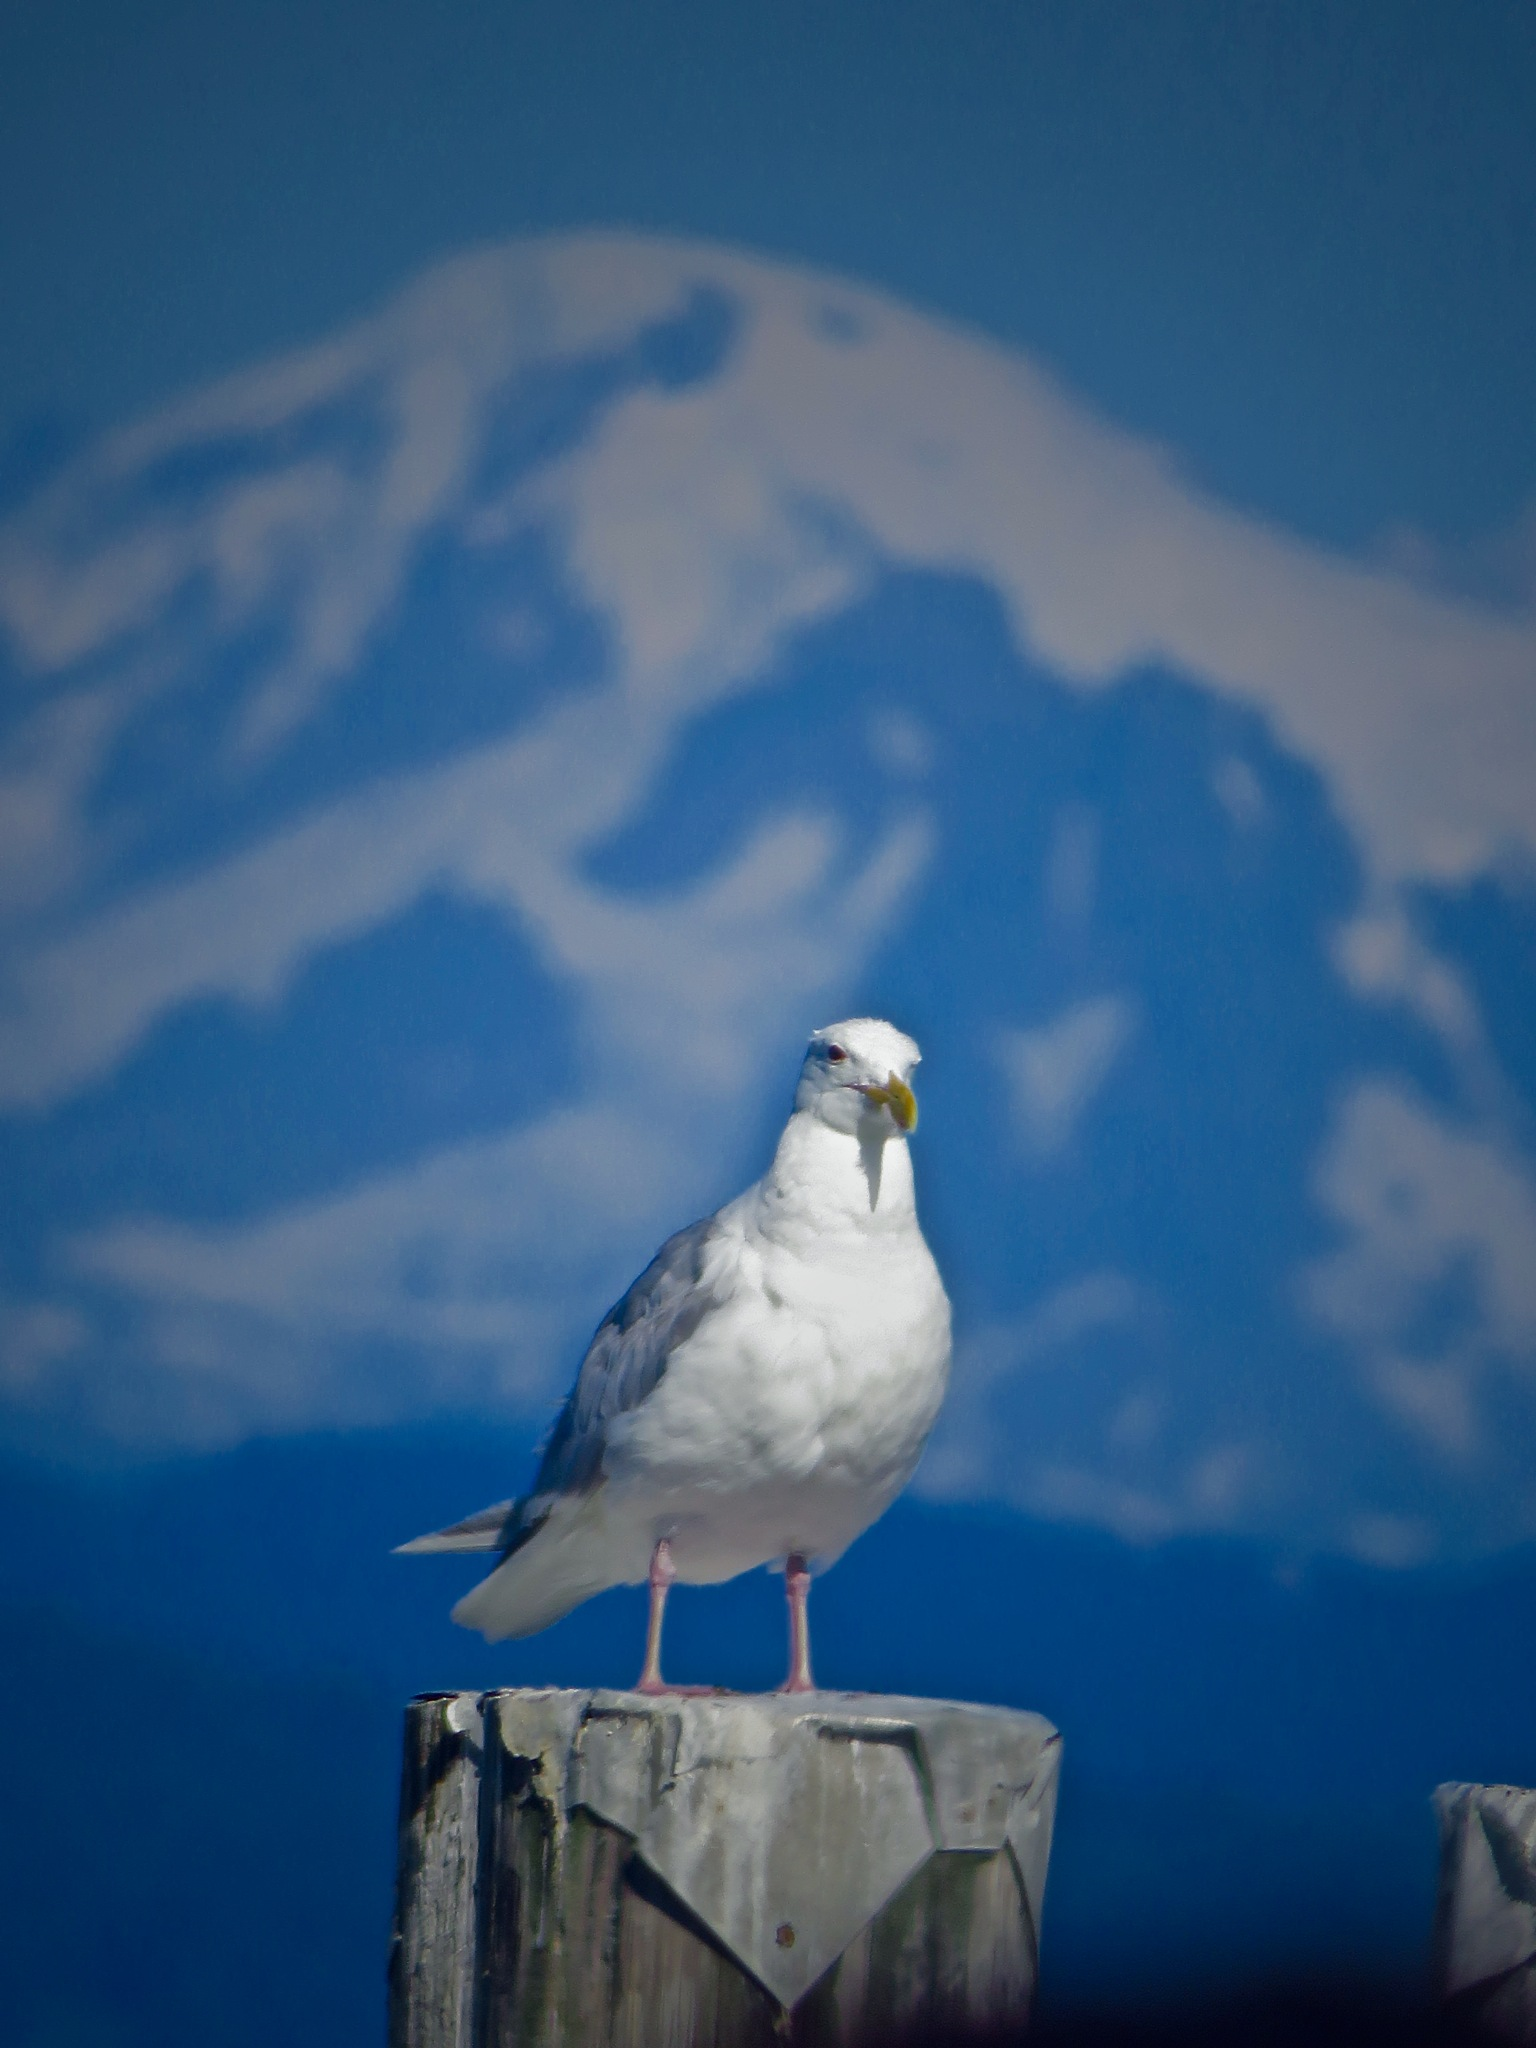 the mountains and the sea .... if yer a bird its a good place to be  by David Devion